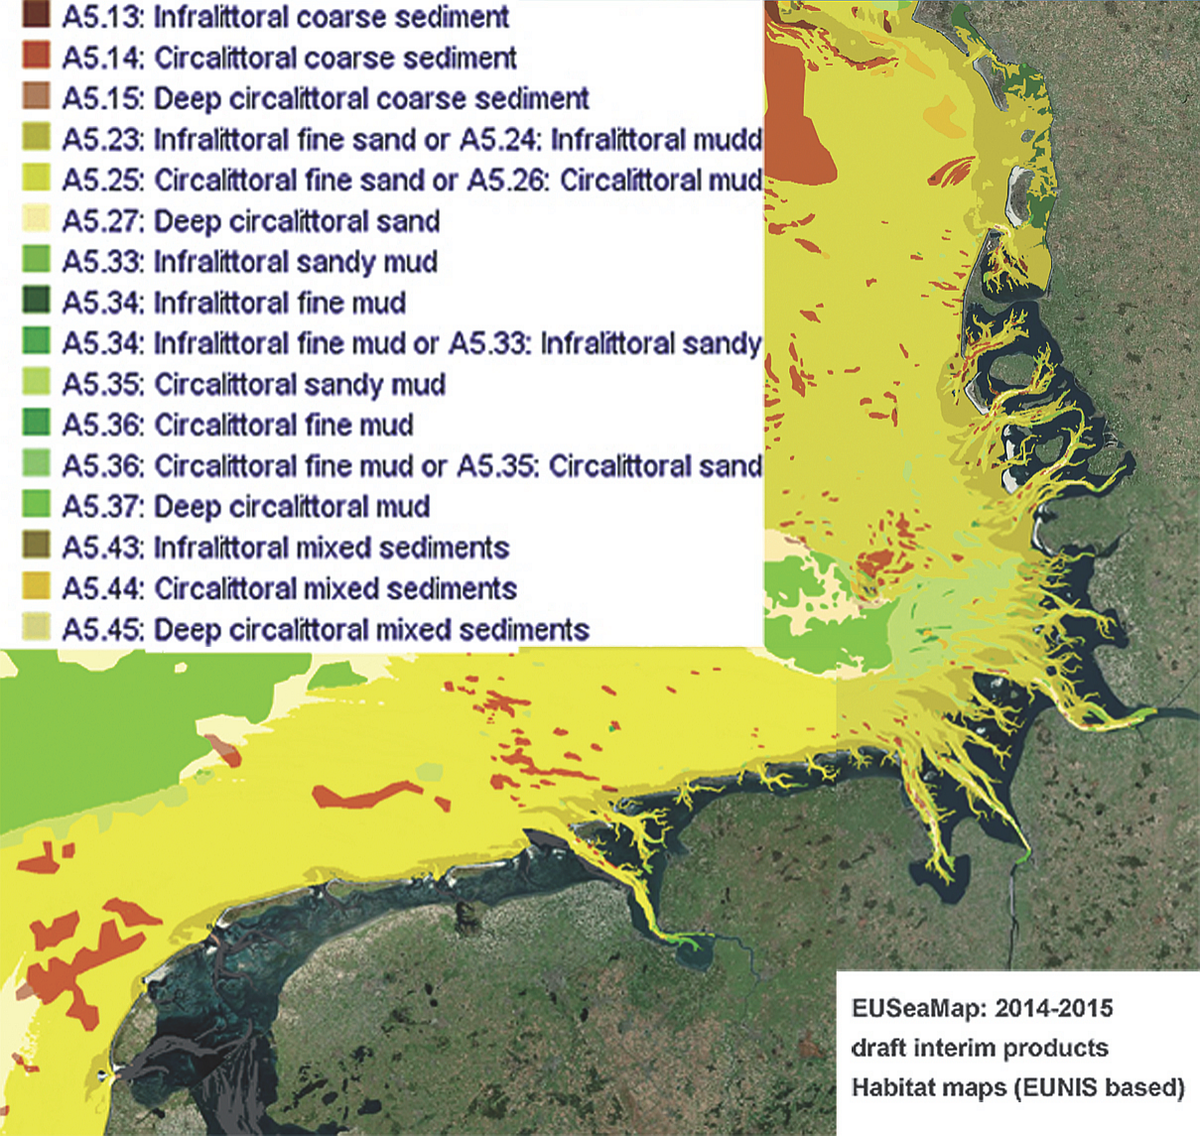 Figure 9. Habitat map of the Wadden Sea and adjacent offshore areas based on EUNIS classification (after EMODnet 2015).